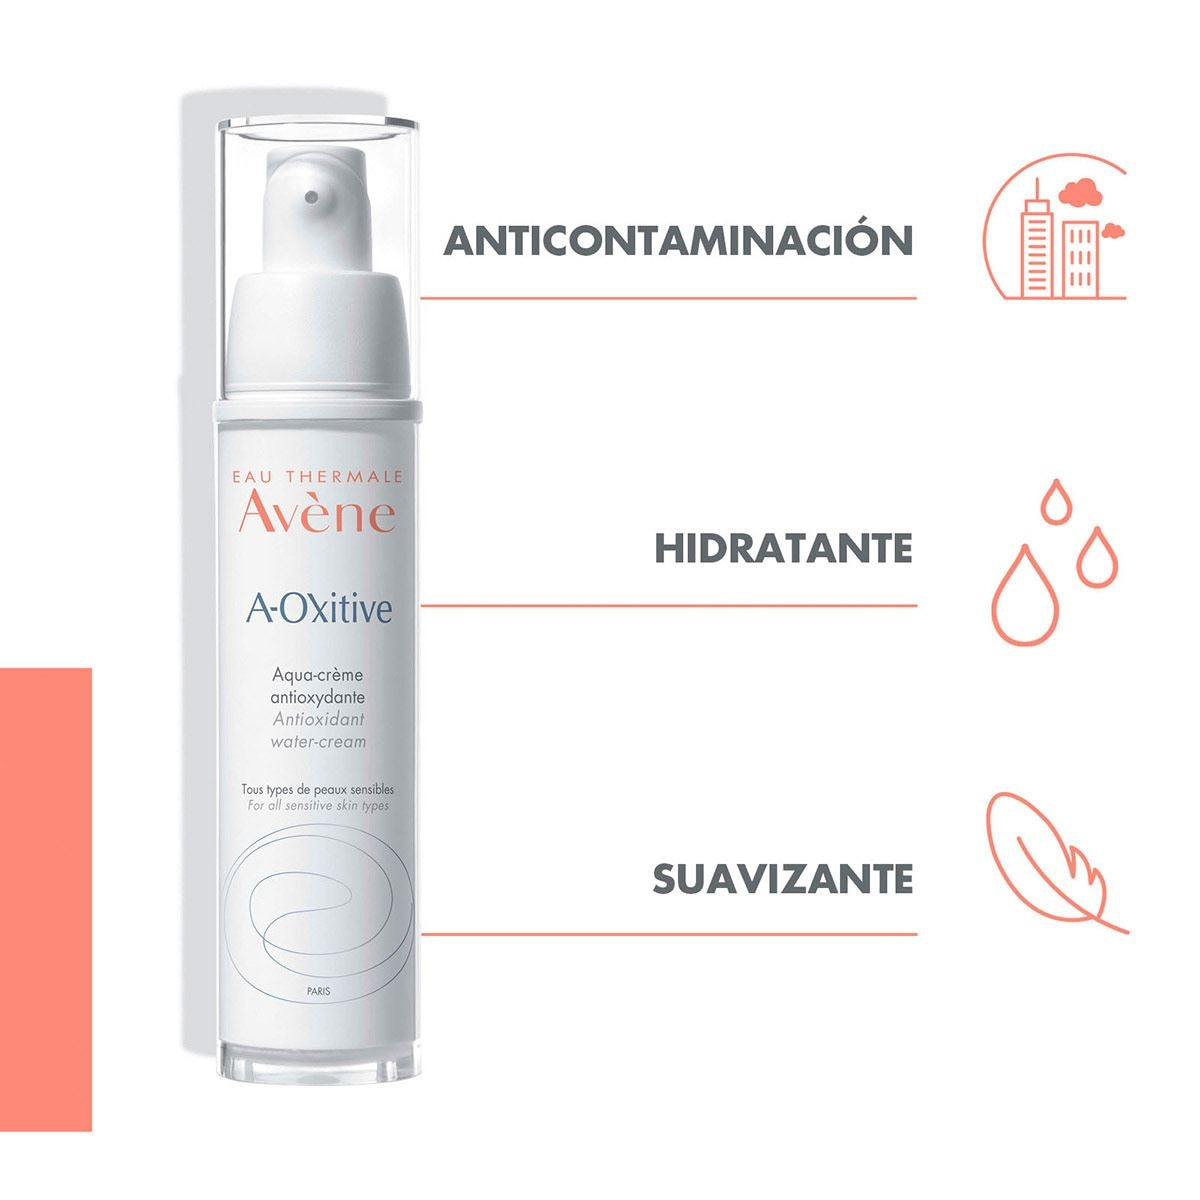 Anti-Oxitive en Crema (30 ml) de Avene